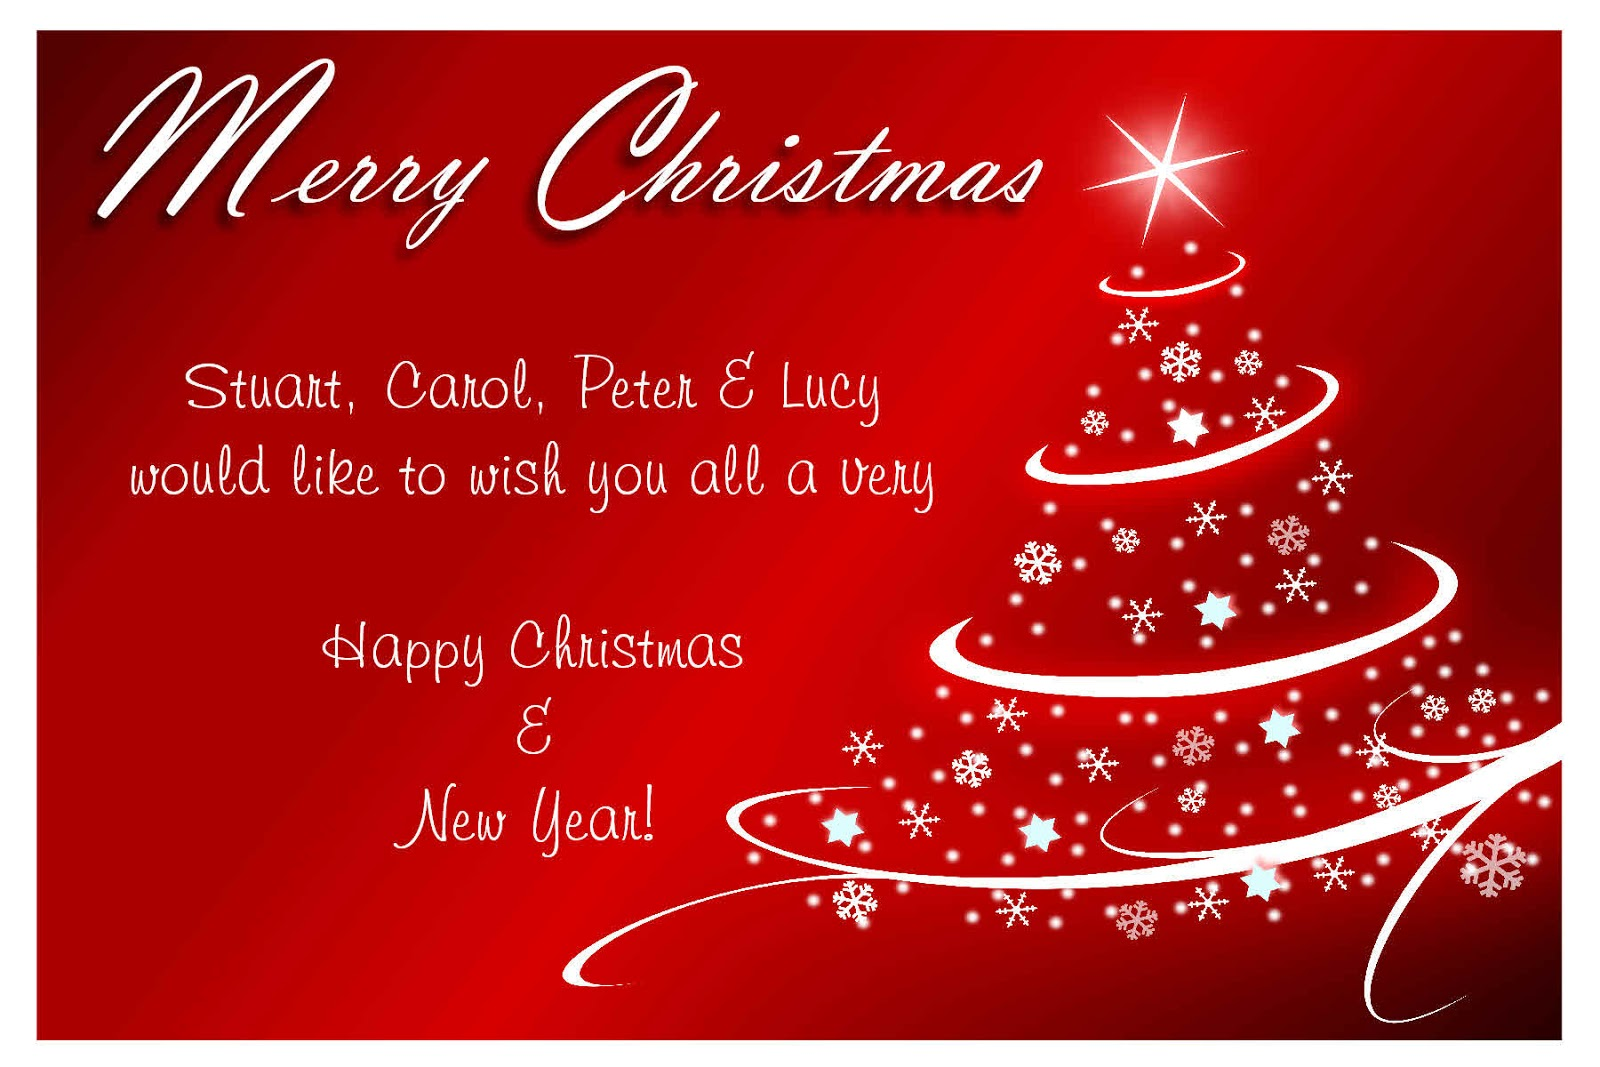 Christmas Cards Wallpapers High Quality | Download Free